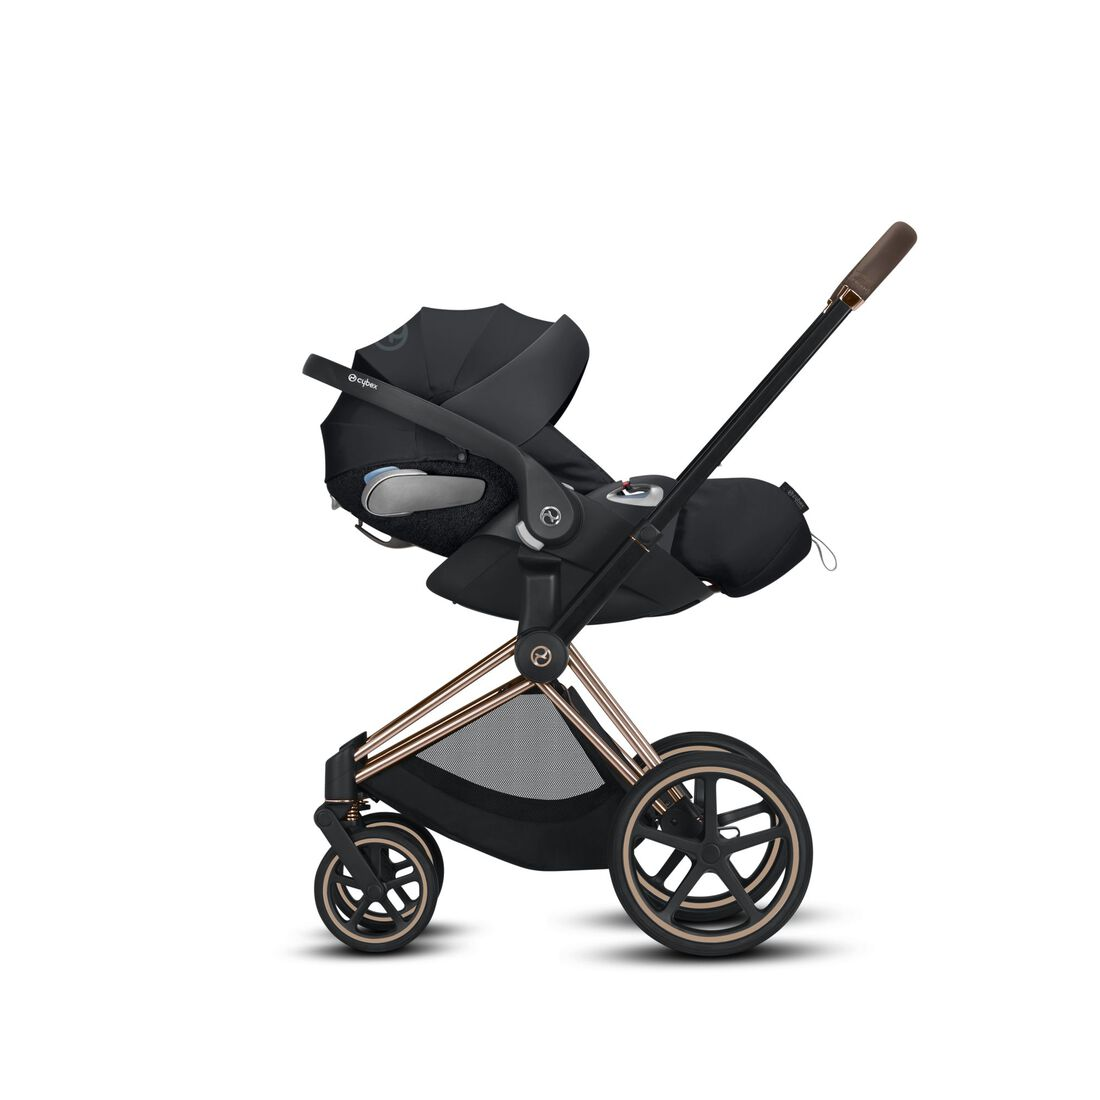 Eezy S+ – 2-IN-1 TRAVEL SYSTEM